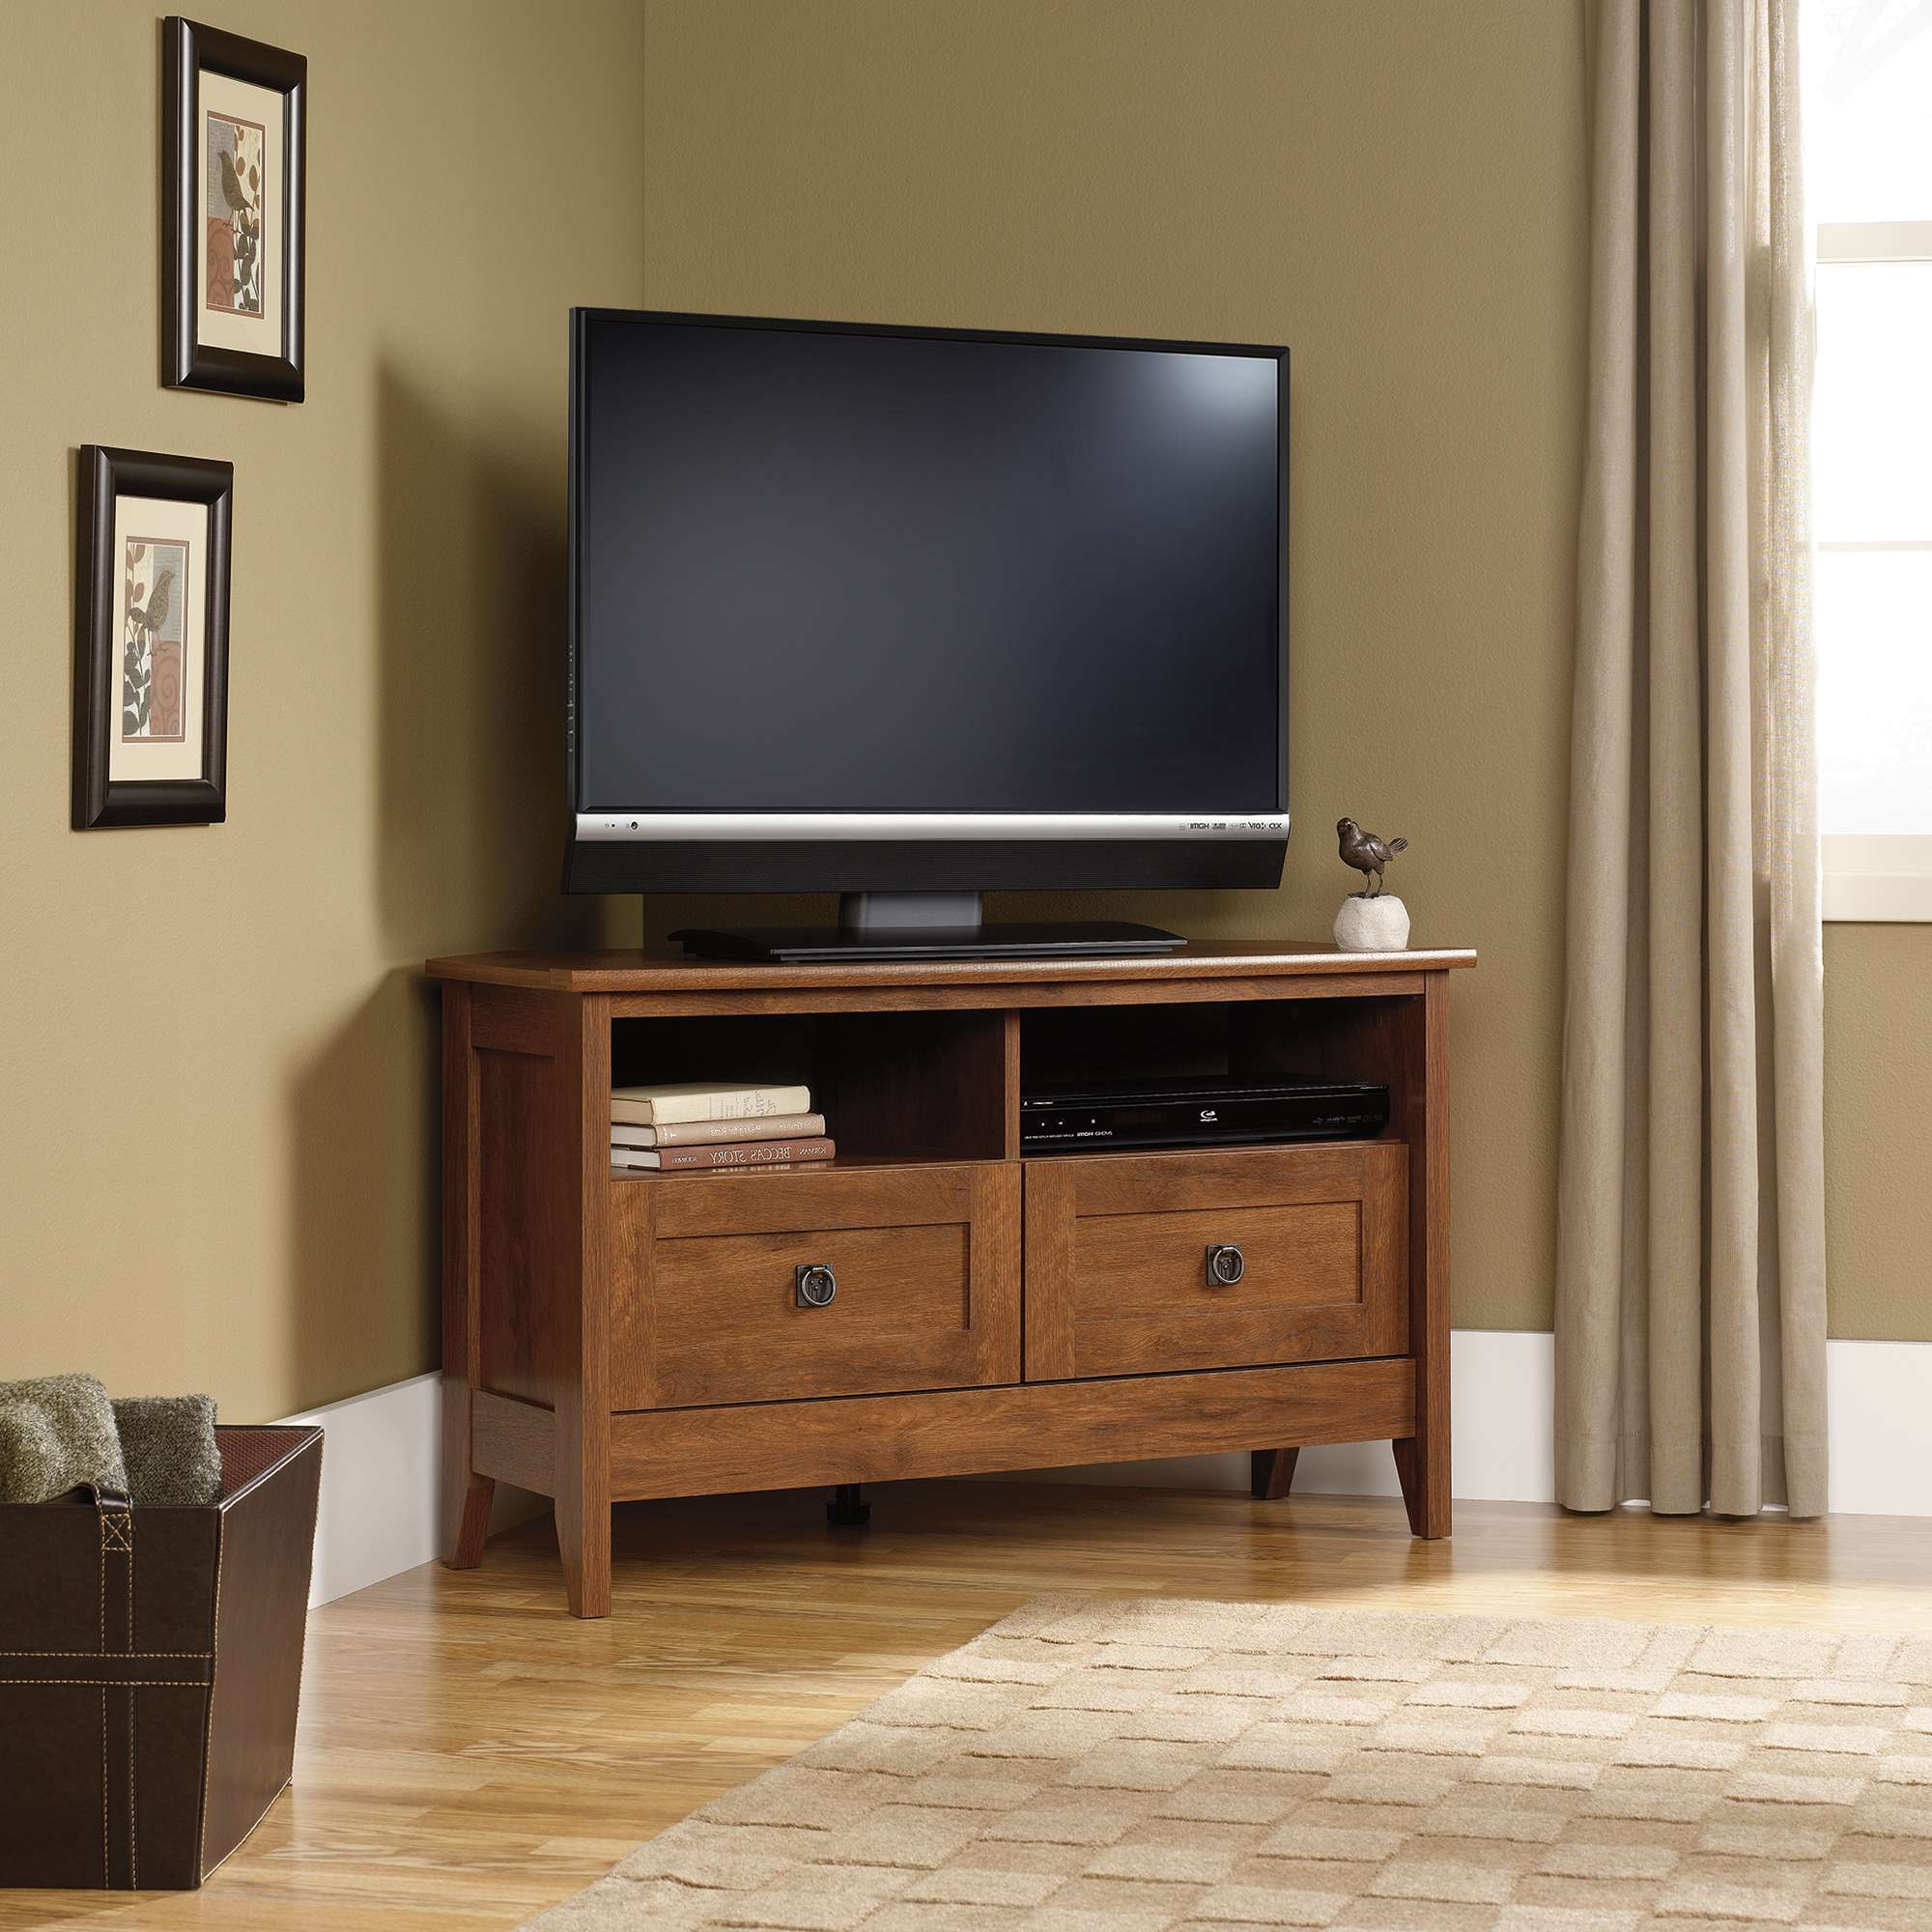 Sauder Select | Corner Tv Stand | 410627 | Sauder With Regard To Corner Tv Stands (View 13 of 15)